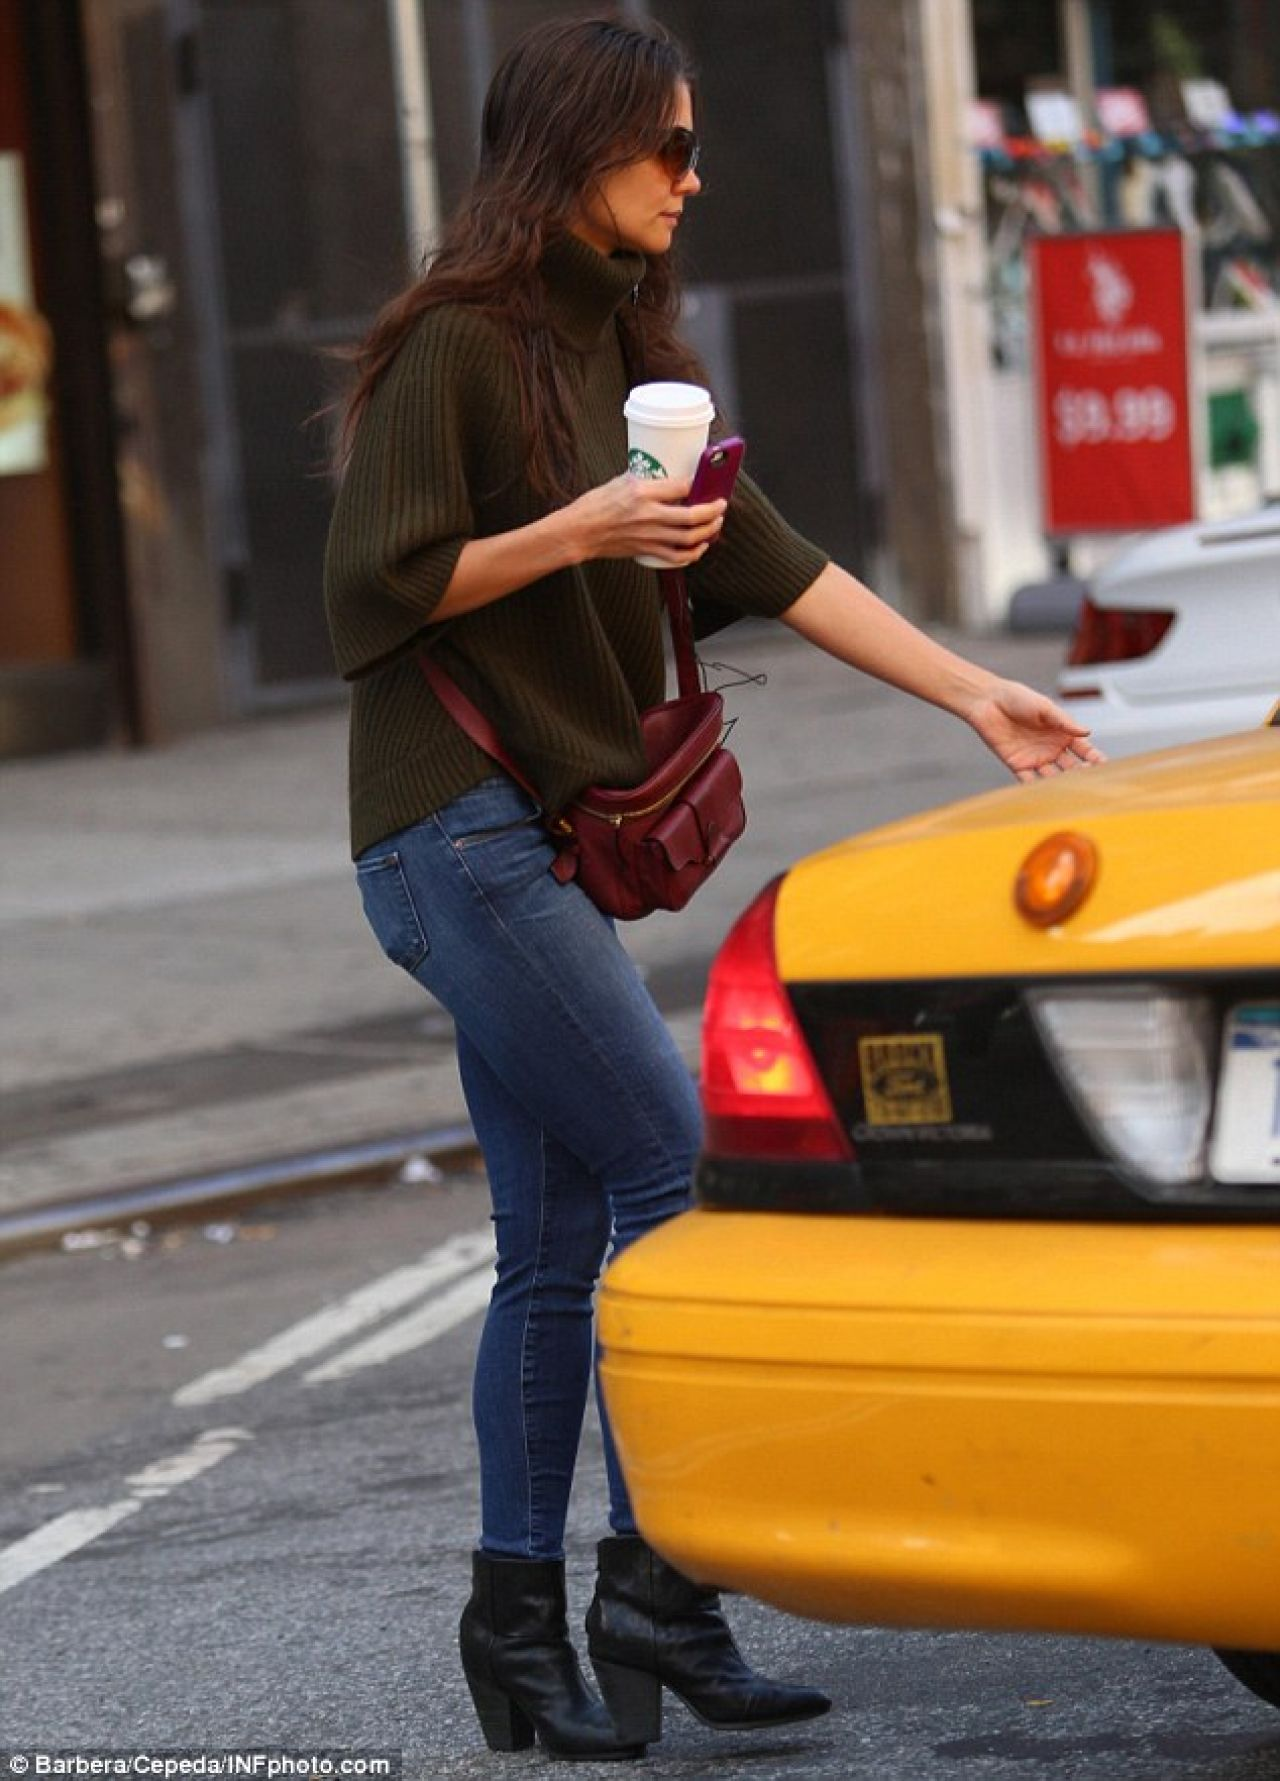 katie holmes street style in new york city october 2013